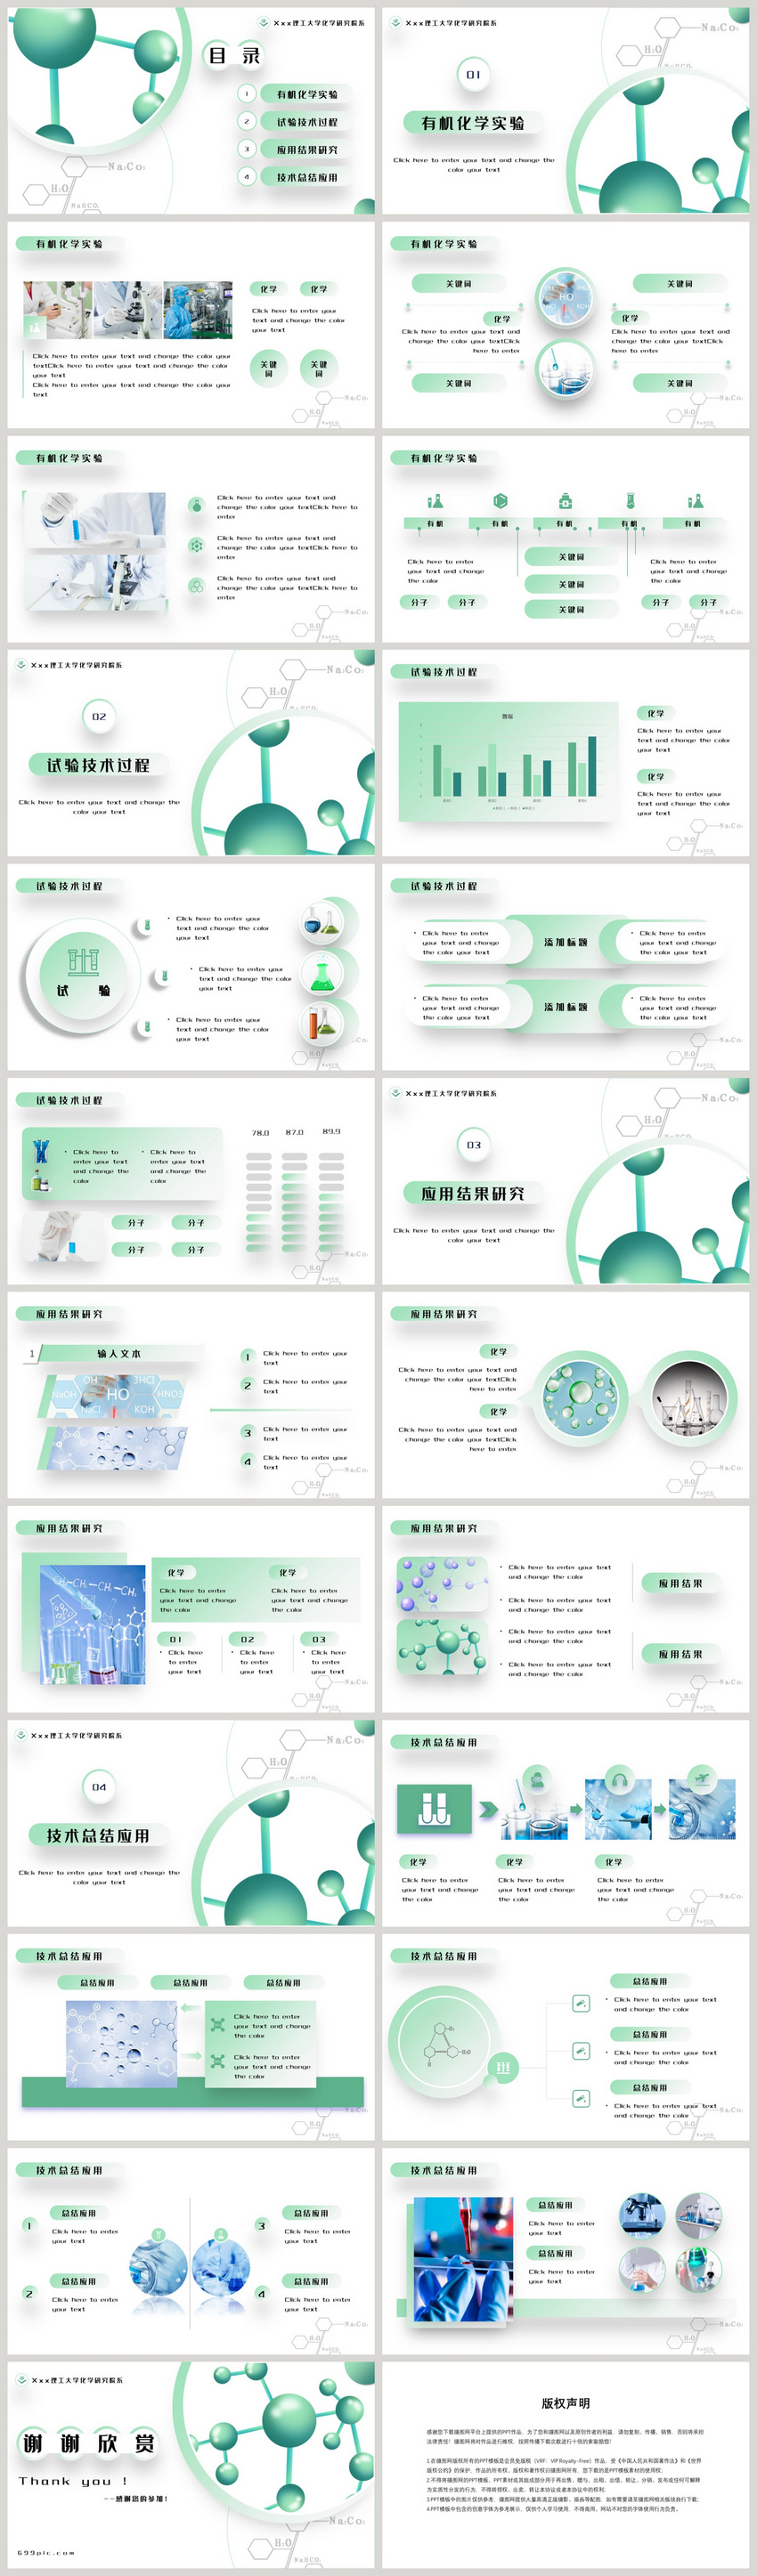 Green Simple Organic Chemistry Academic Research Ppt Template Powerpoint Templete Ppt Free Download 401739719 Lovepik Com